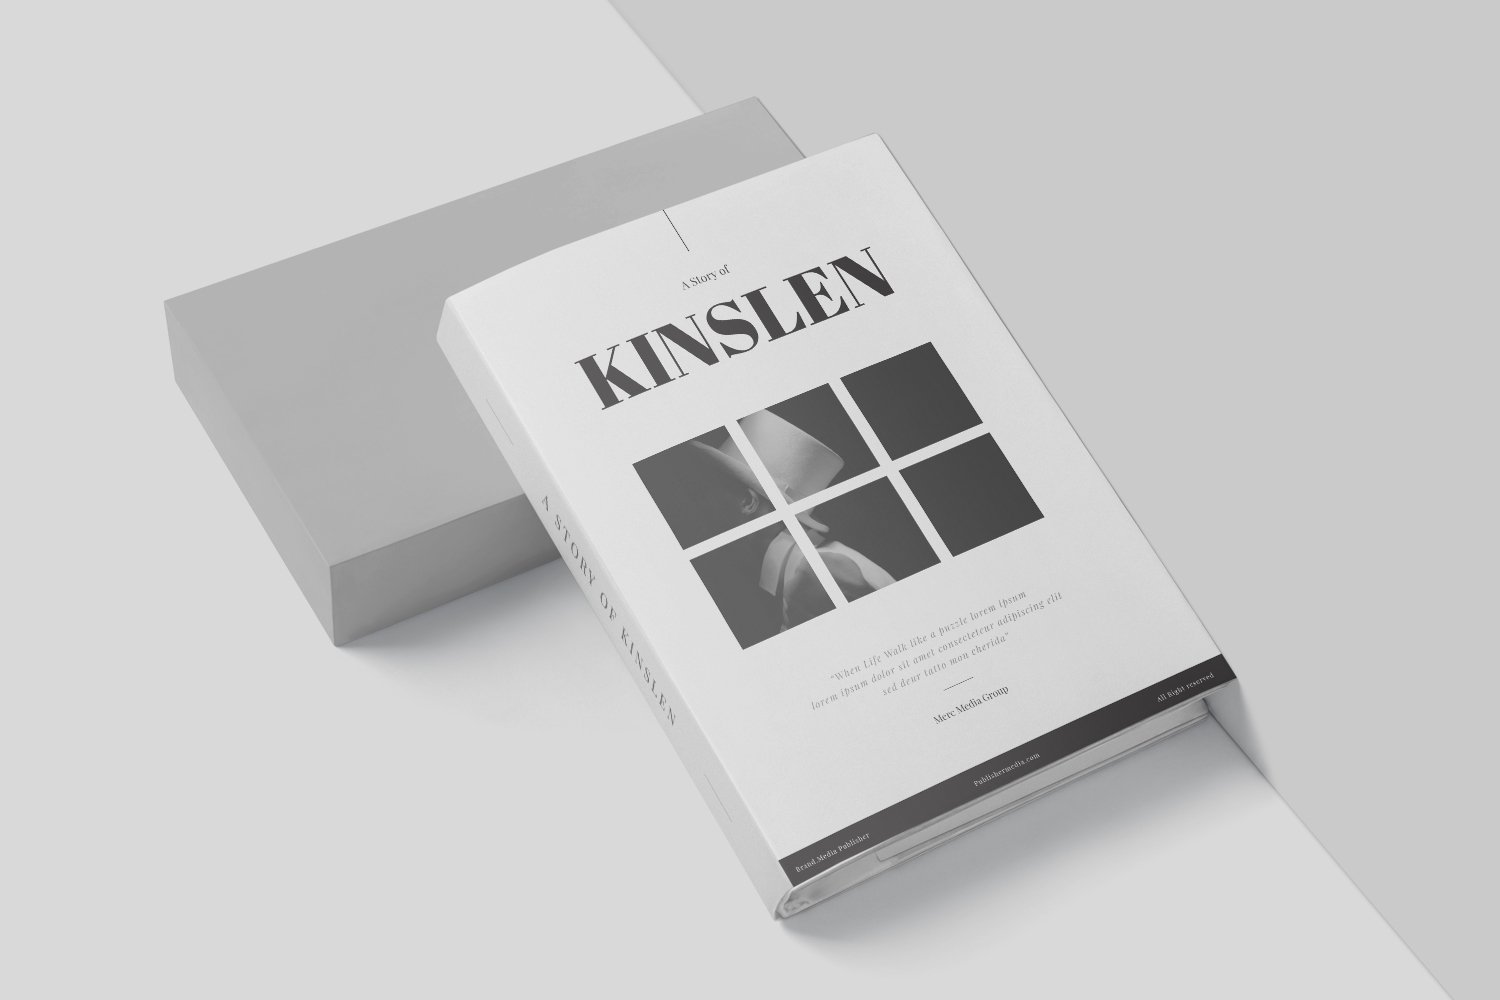 Kinslen Book Cover example image 3